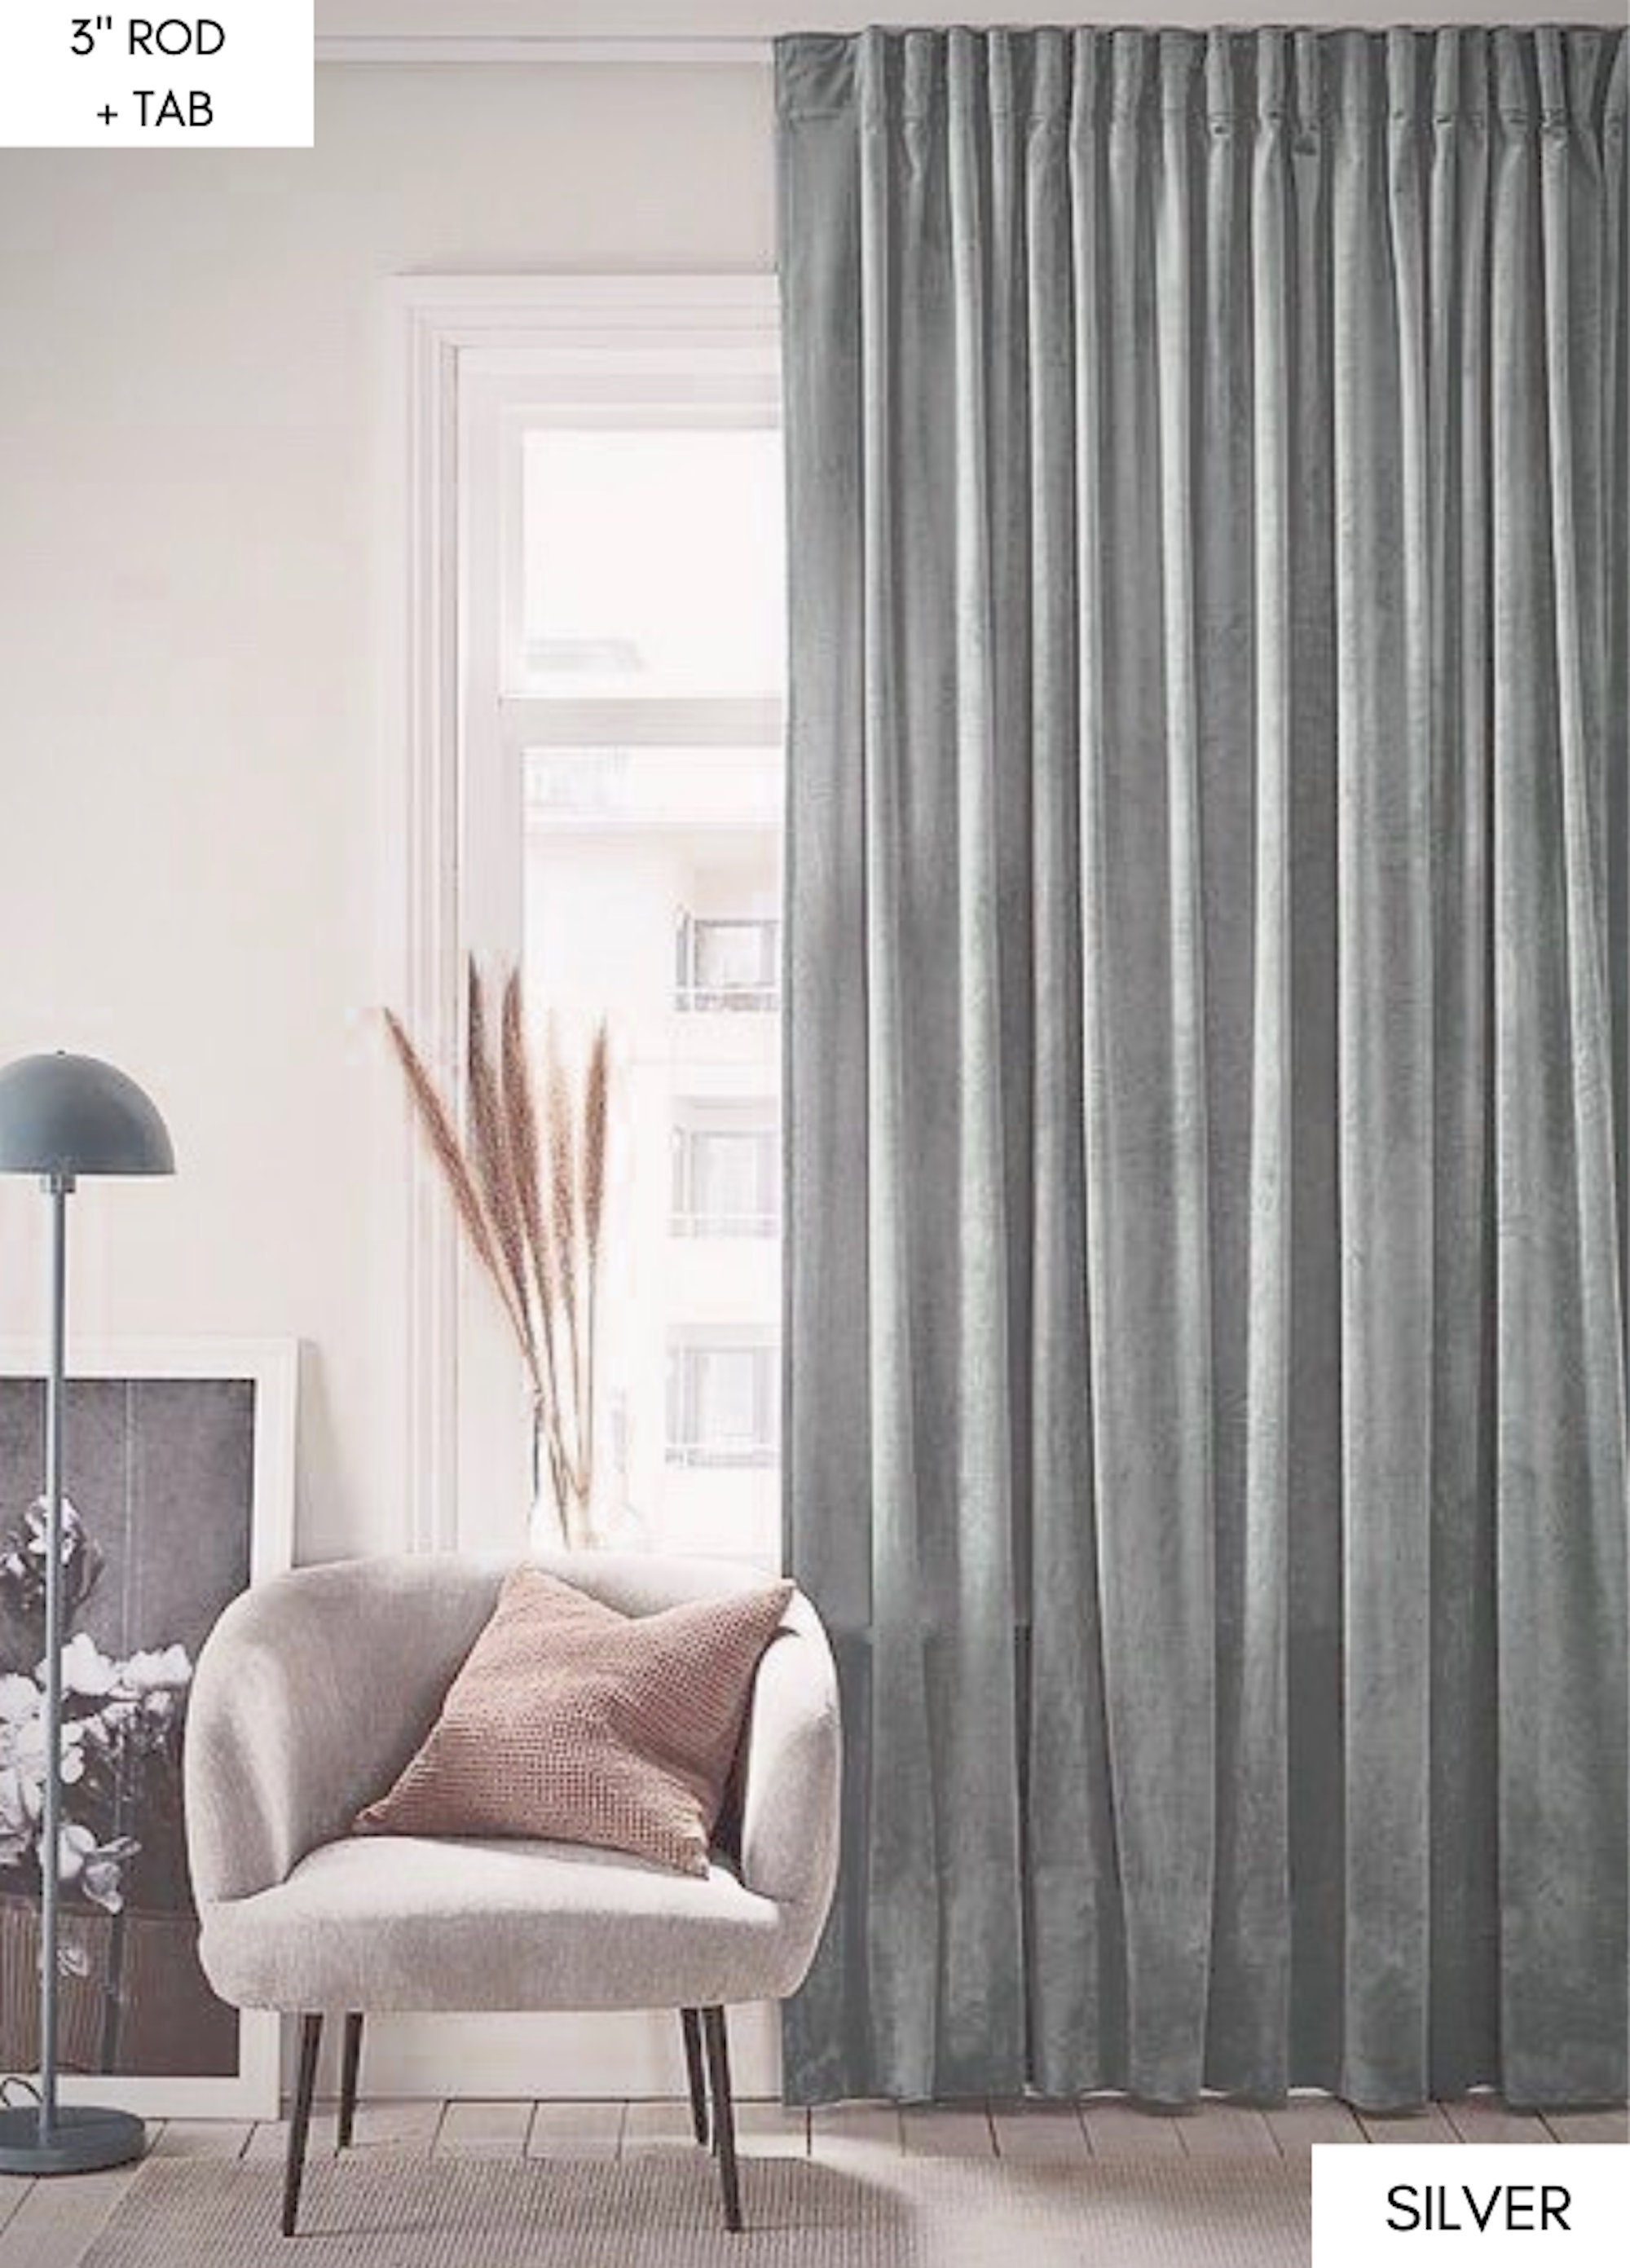 Velvet Curtains Custom Window Curtain Panels Curtain Panels Blackout Curtains Dining Room Curtains Bedroom Curtains Linen Curtains